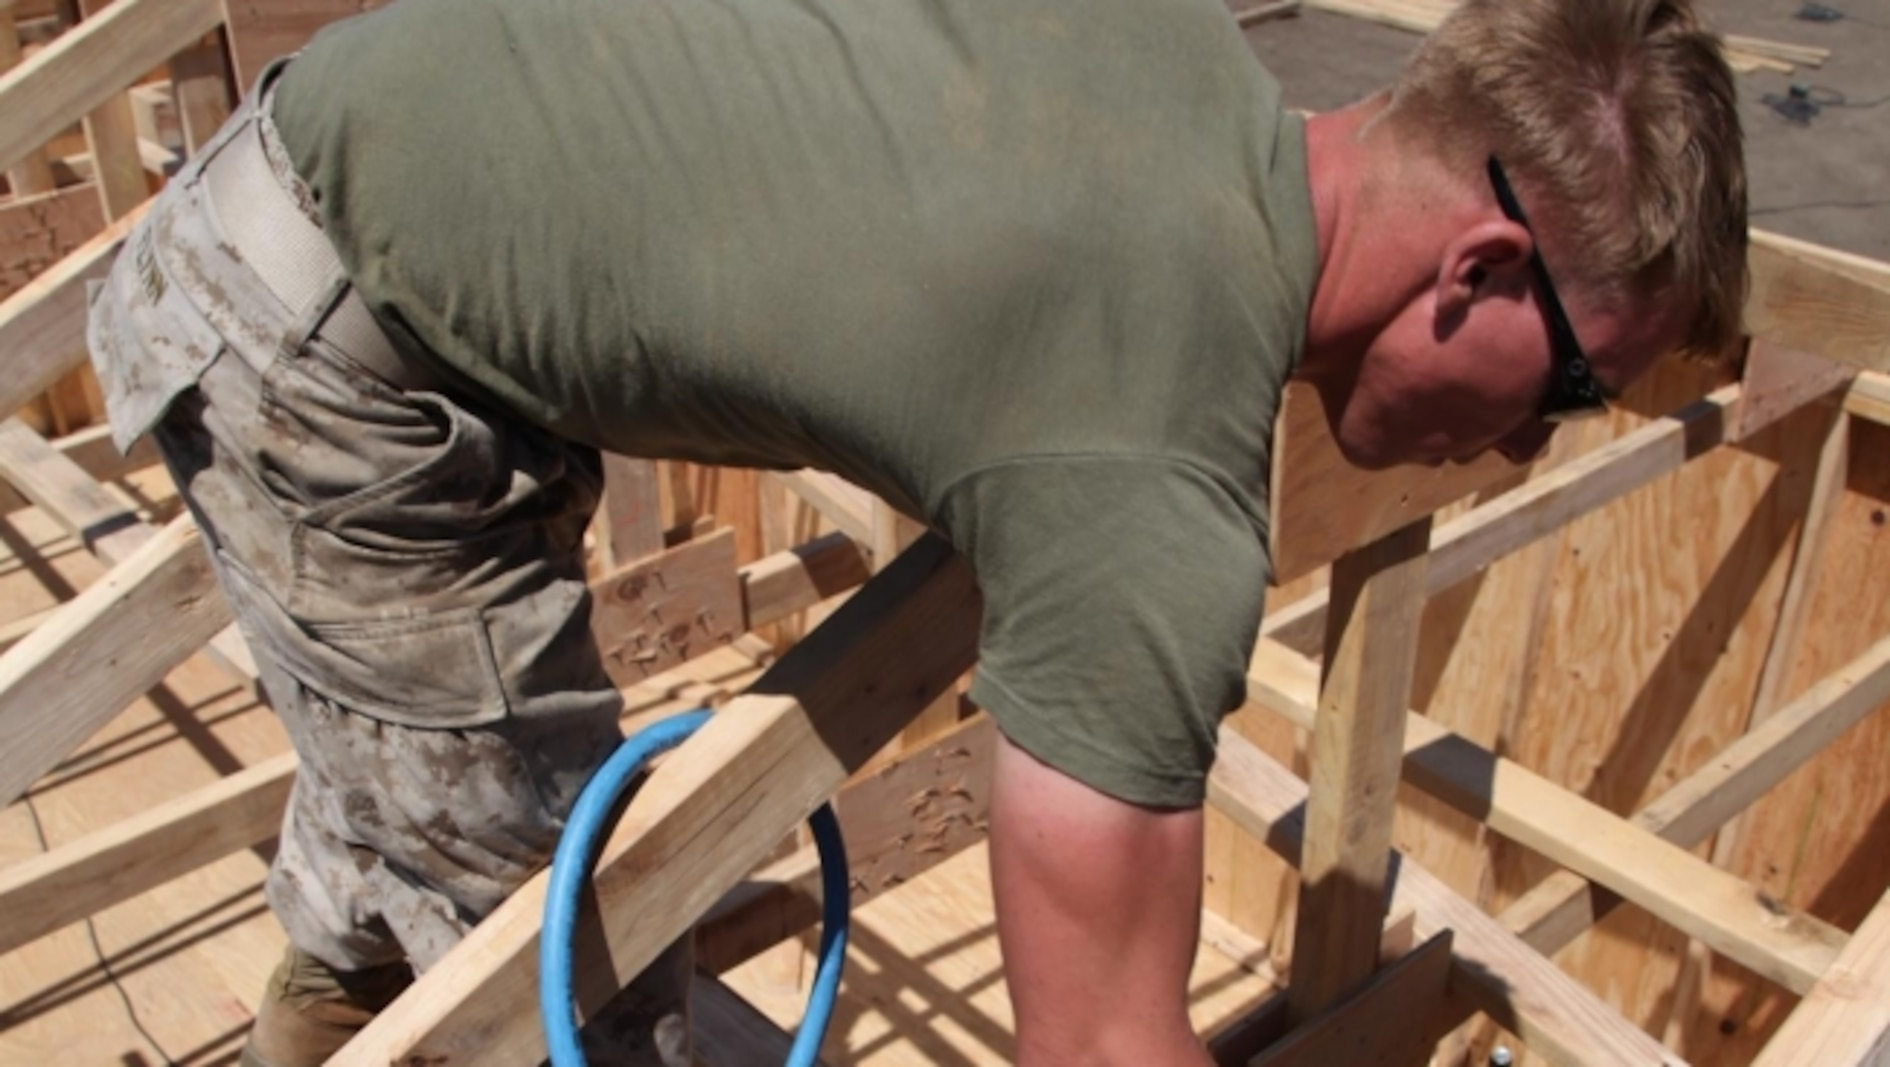 Cpl. Matthew R. Flynn, an assistant squad leader with Engineer Detachment, Combat Logistics Battalion 11, 11th Marine Expeditionary Unit, uses a nail gun to secure part of the structure of a Southwest Asia hut during a field operation at Camp Pendleton, Calif., June 20. Constructing the hut readied them for any humanitarian assistance or disaster relief missions where infrastructure damage has occurred.